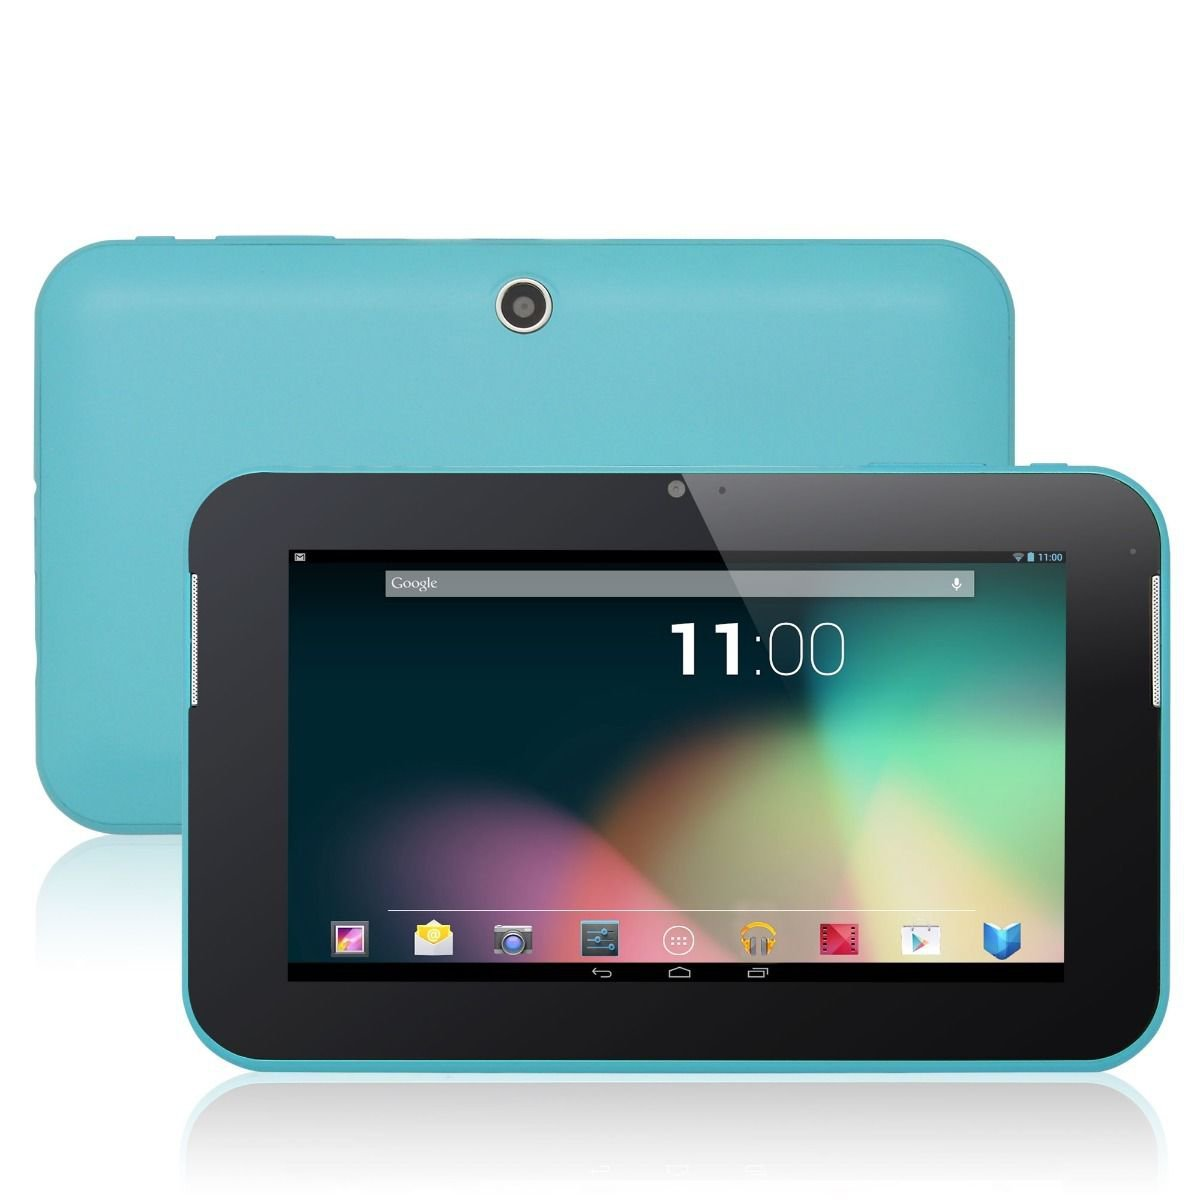 New OEM Blue Android 4.2 Tablet PC Cortex A9 Dual Core